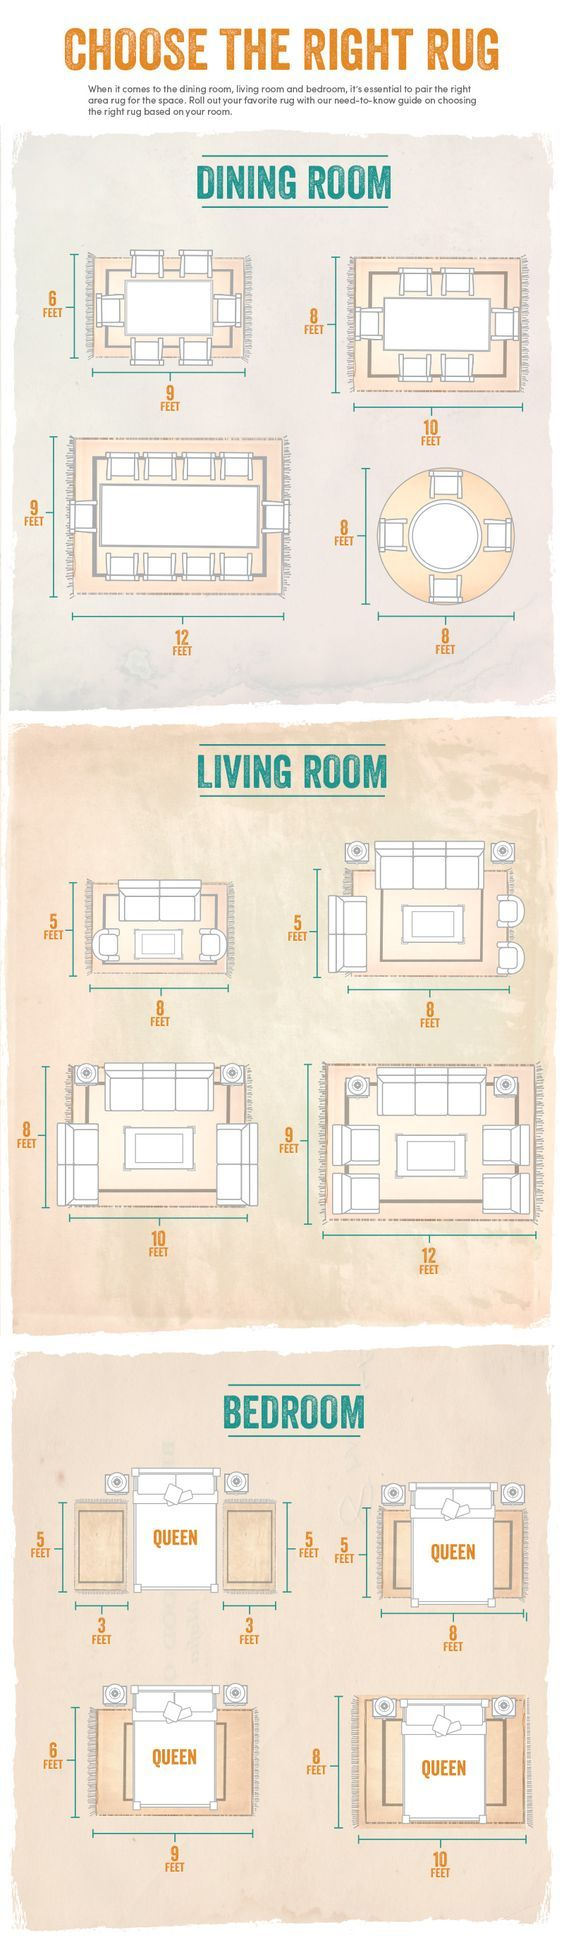 25 best ideas about rug placement on pinterest area rug placement bedroom size and room size rugs - Living Room Rug Placement